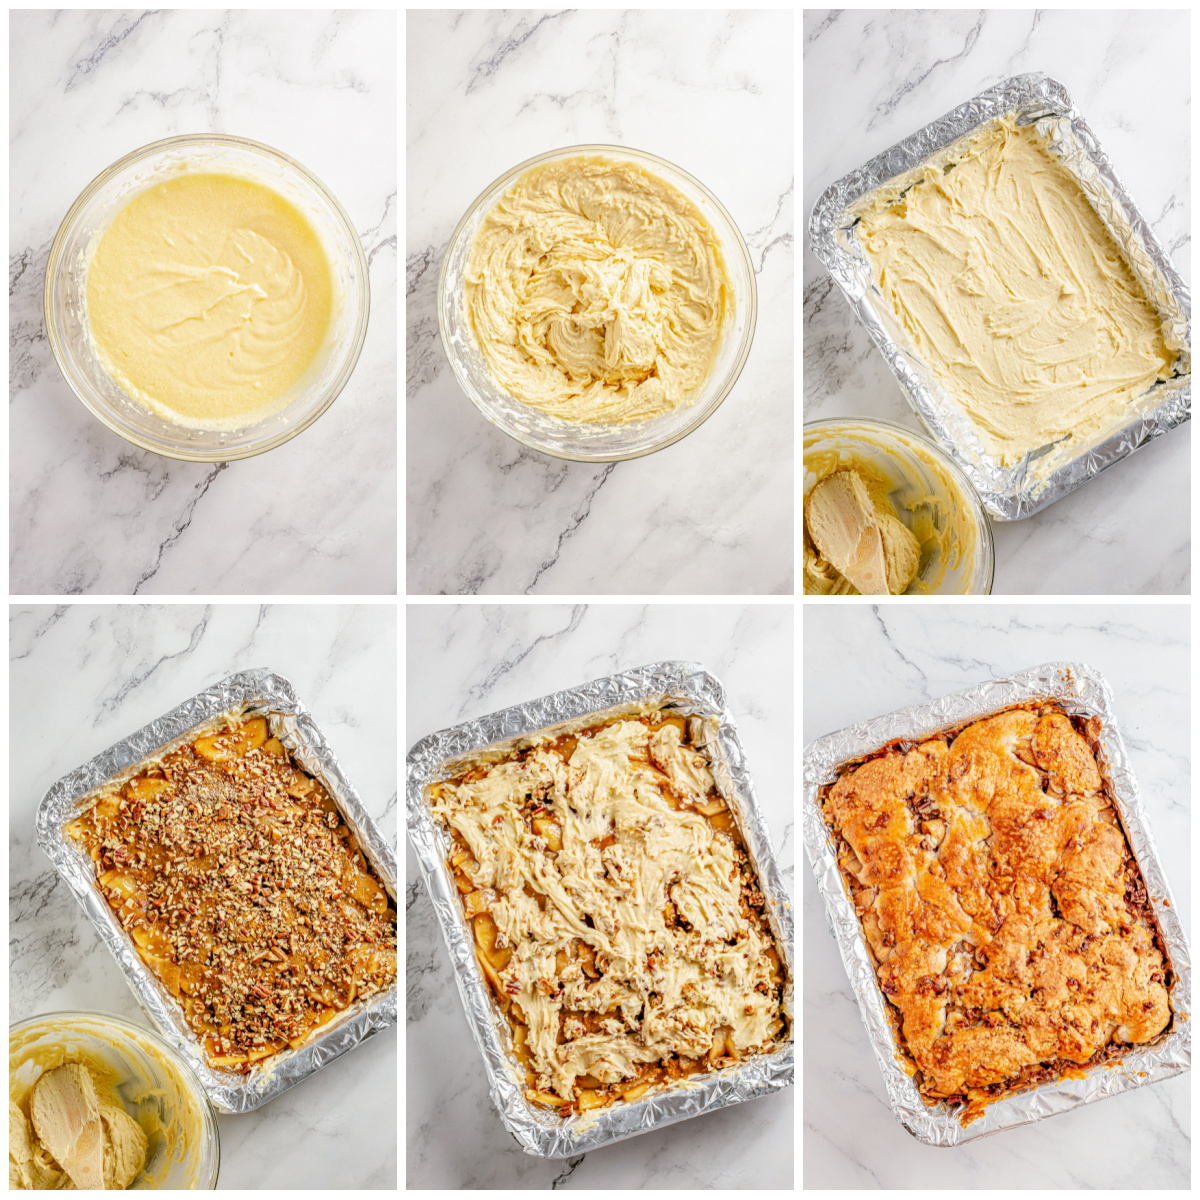 Step by step photos on how to make Apple Pie Bars.